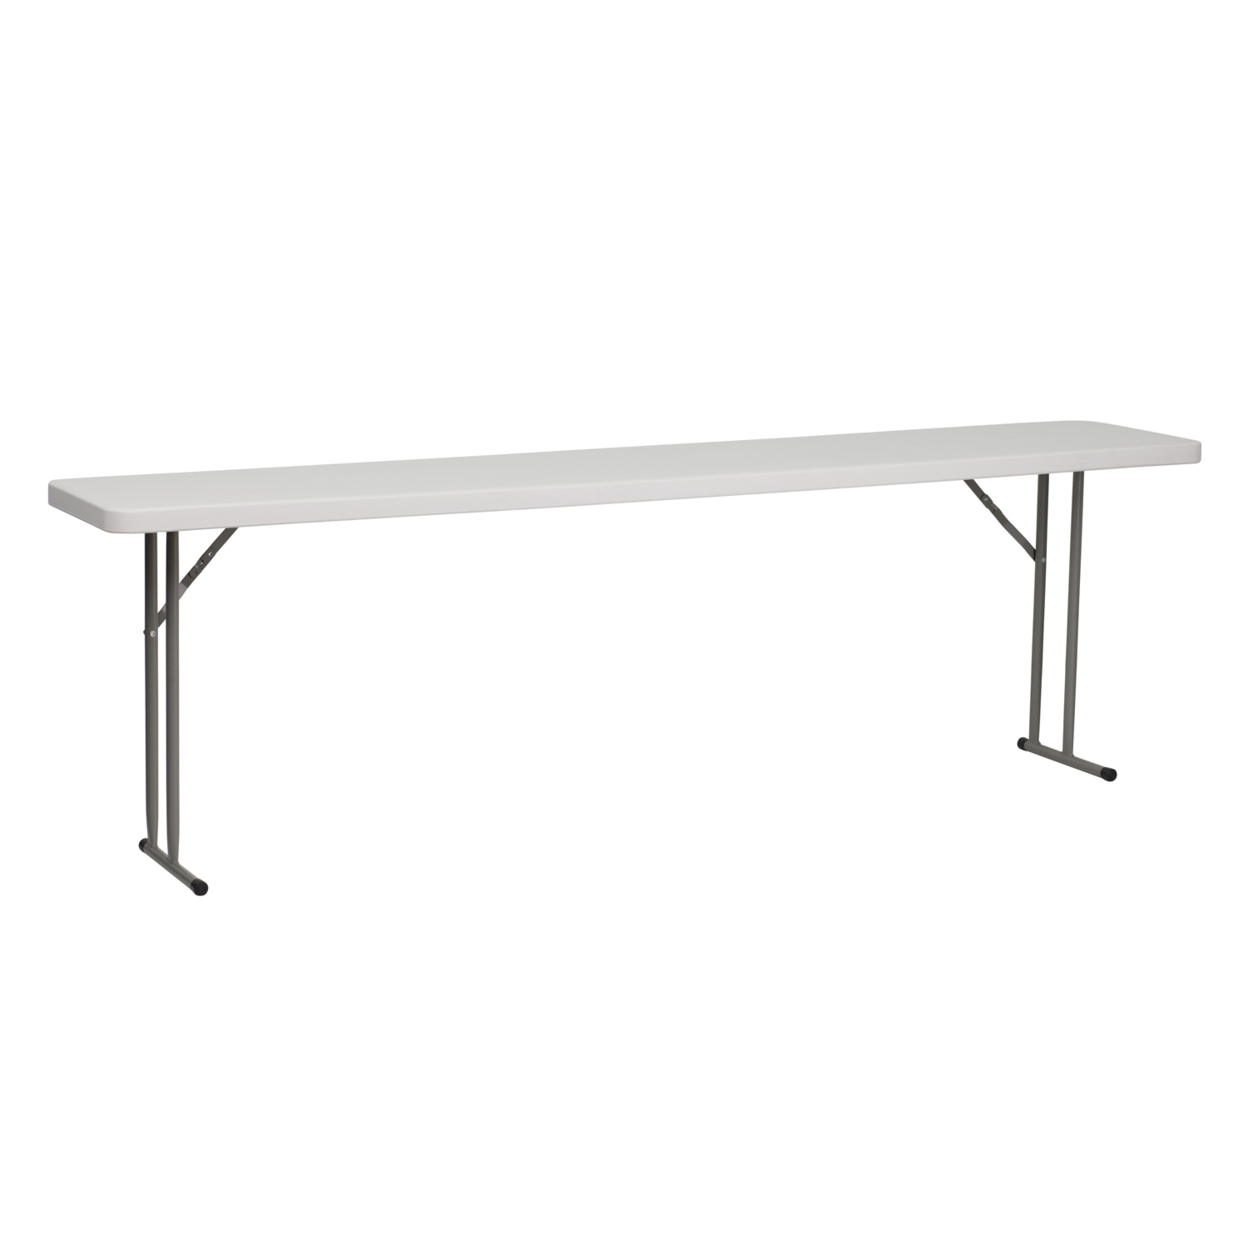 Flash Furniture 18''W x 96''L Granite White Plastic Folding Training Table [863-RB-1896-GG] гирлянда snowhouse сосульки rb oic100lse w ti4 white